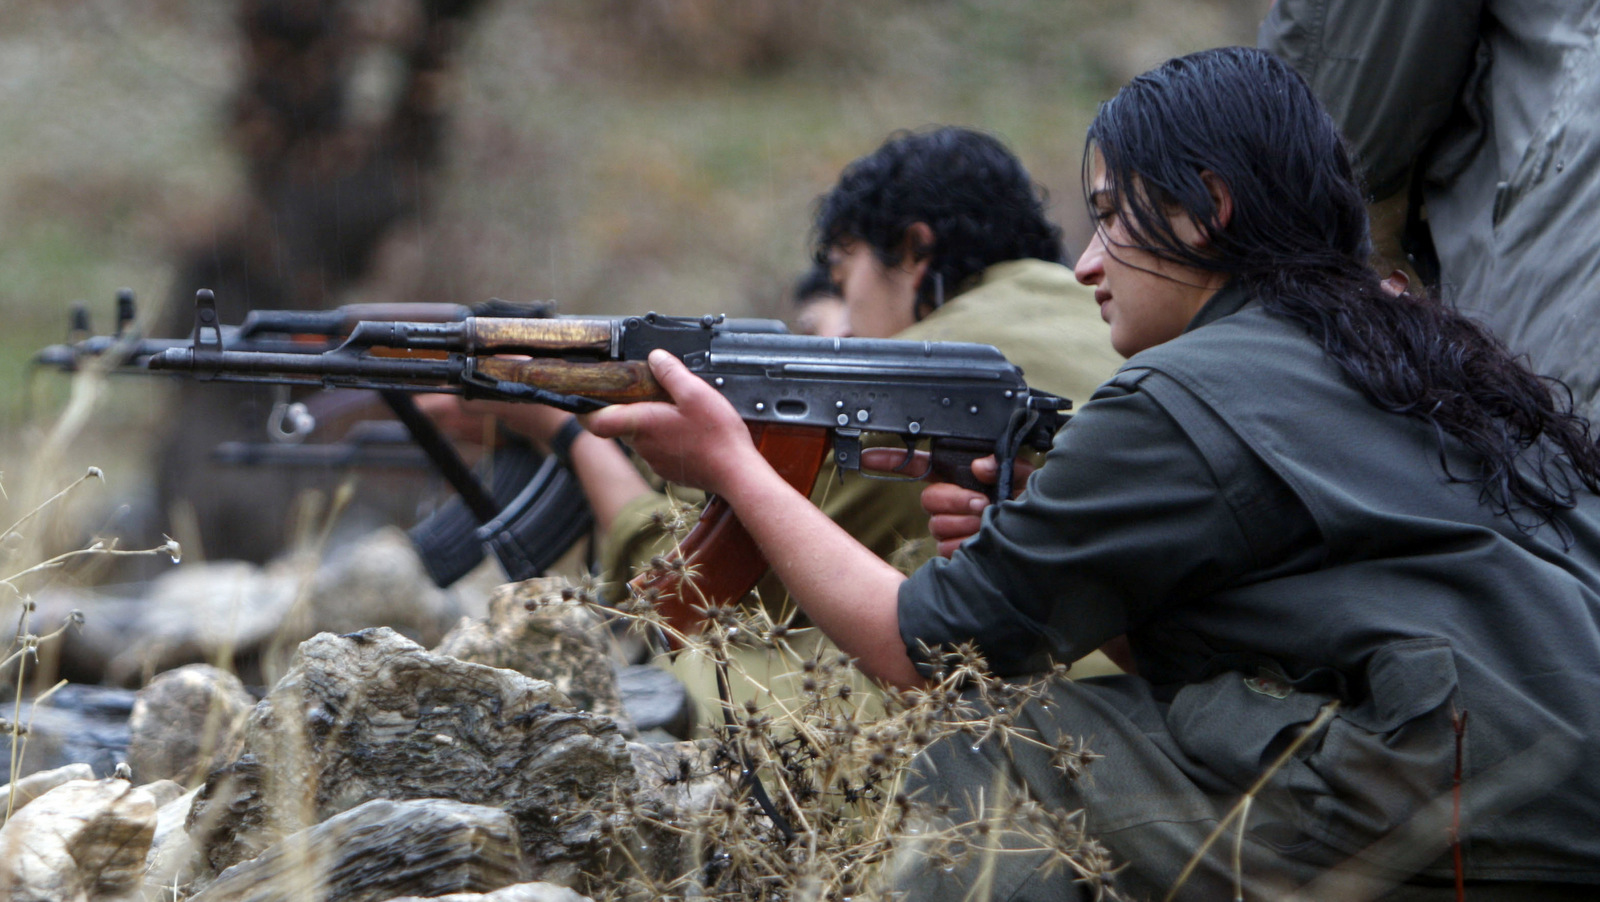 In this 2009 photo, a member of the Free Life Party, or PJAK, fires a rifle at a clandestine weapons training camp in the Qandil mountains of northern Iraq. (AP/Yahya Ahmed)